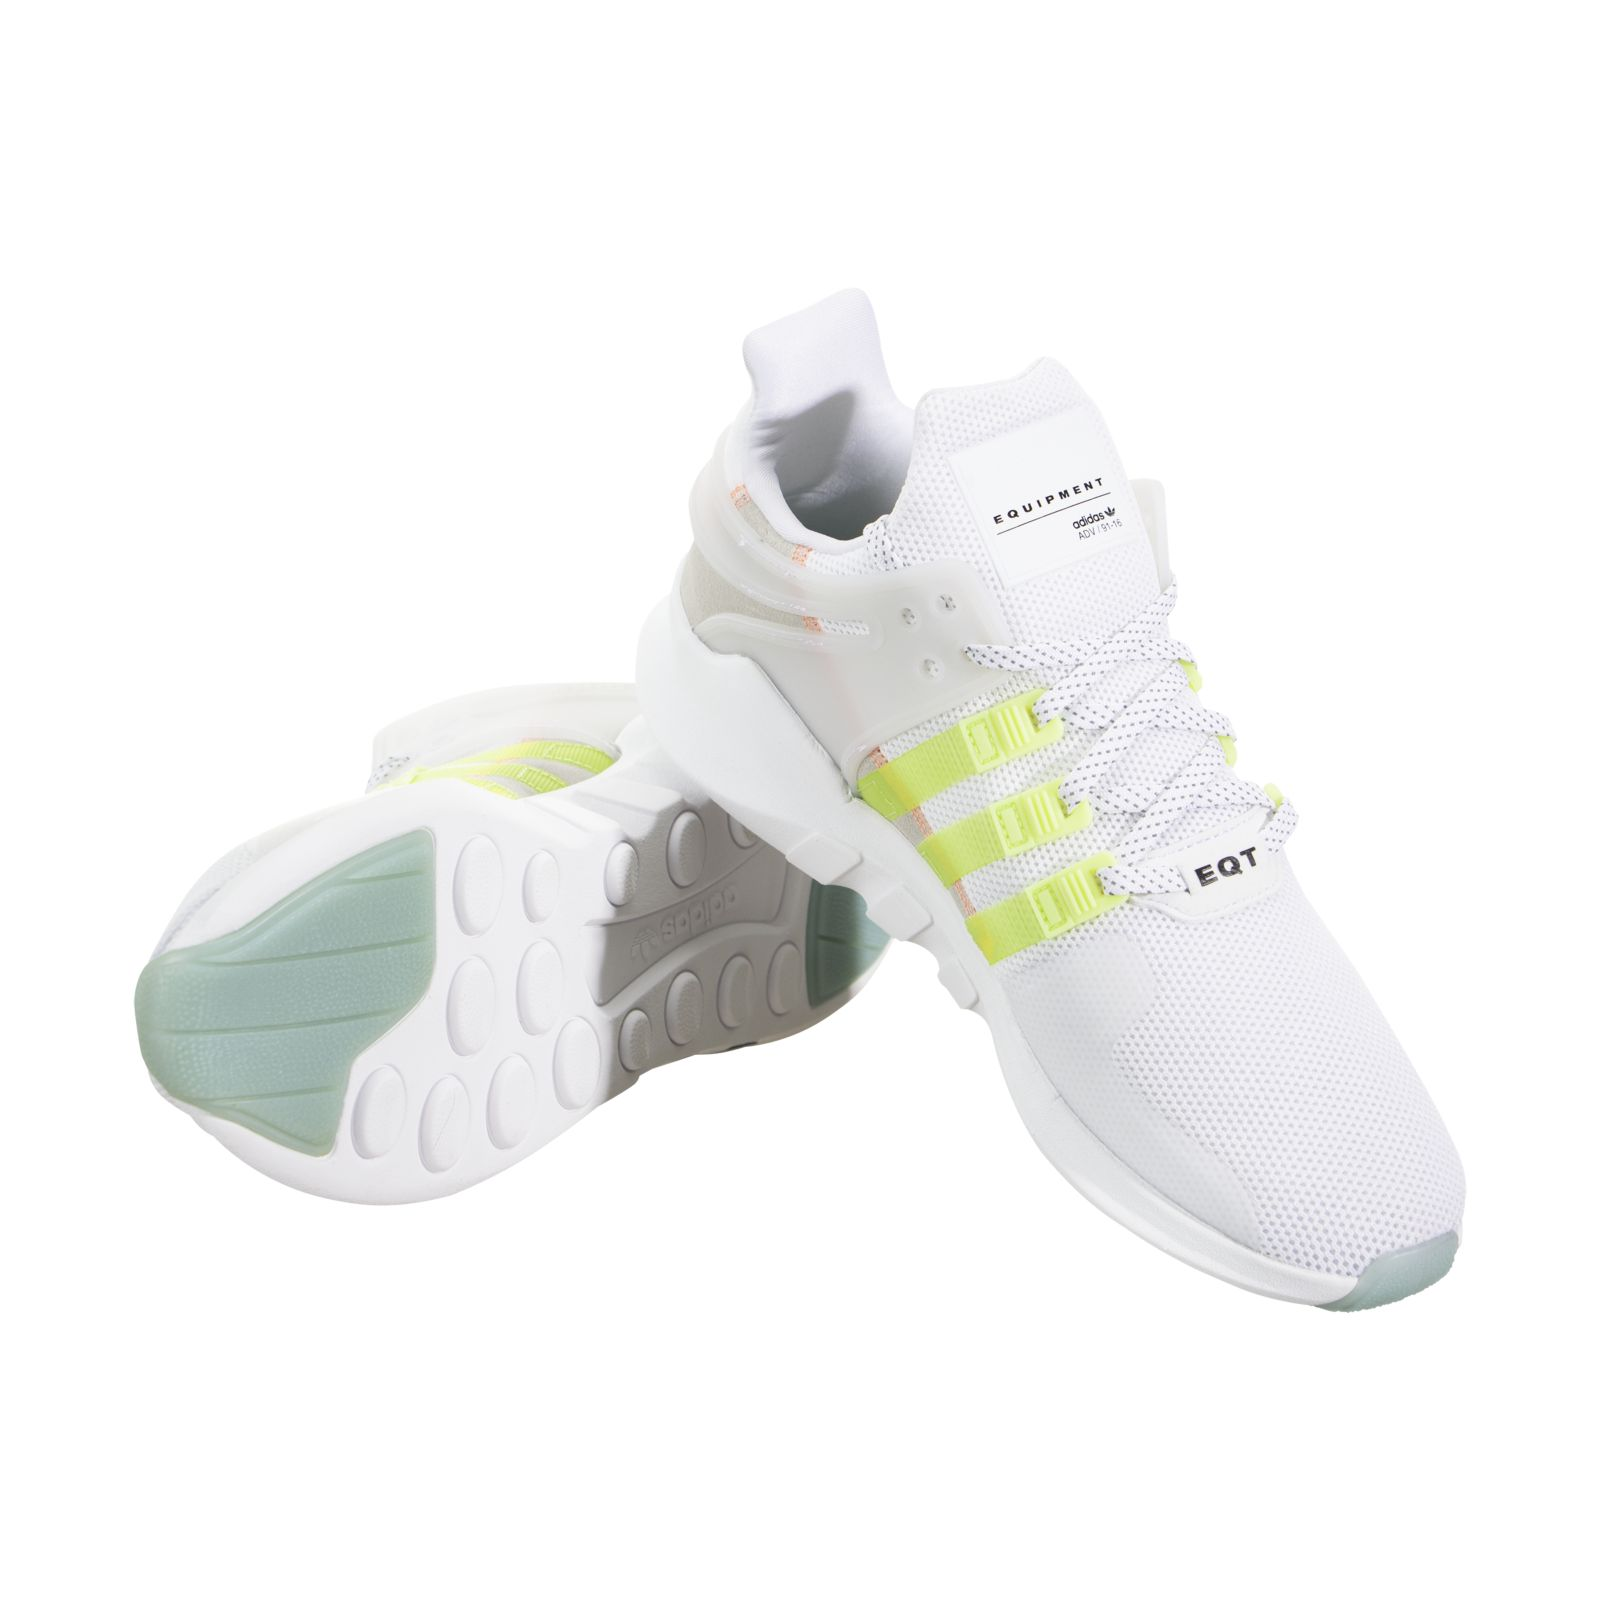 newest d25d6 1749b Details about Adidas EQT Support ADV W db0401